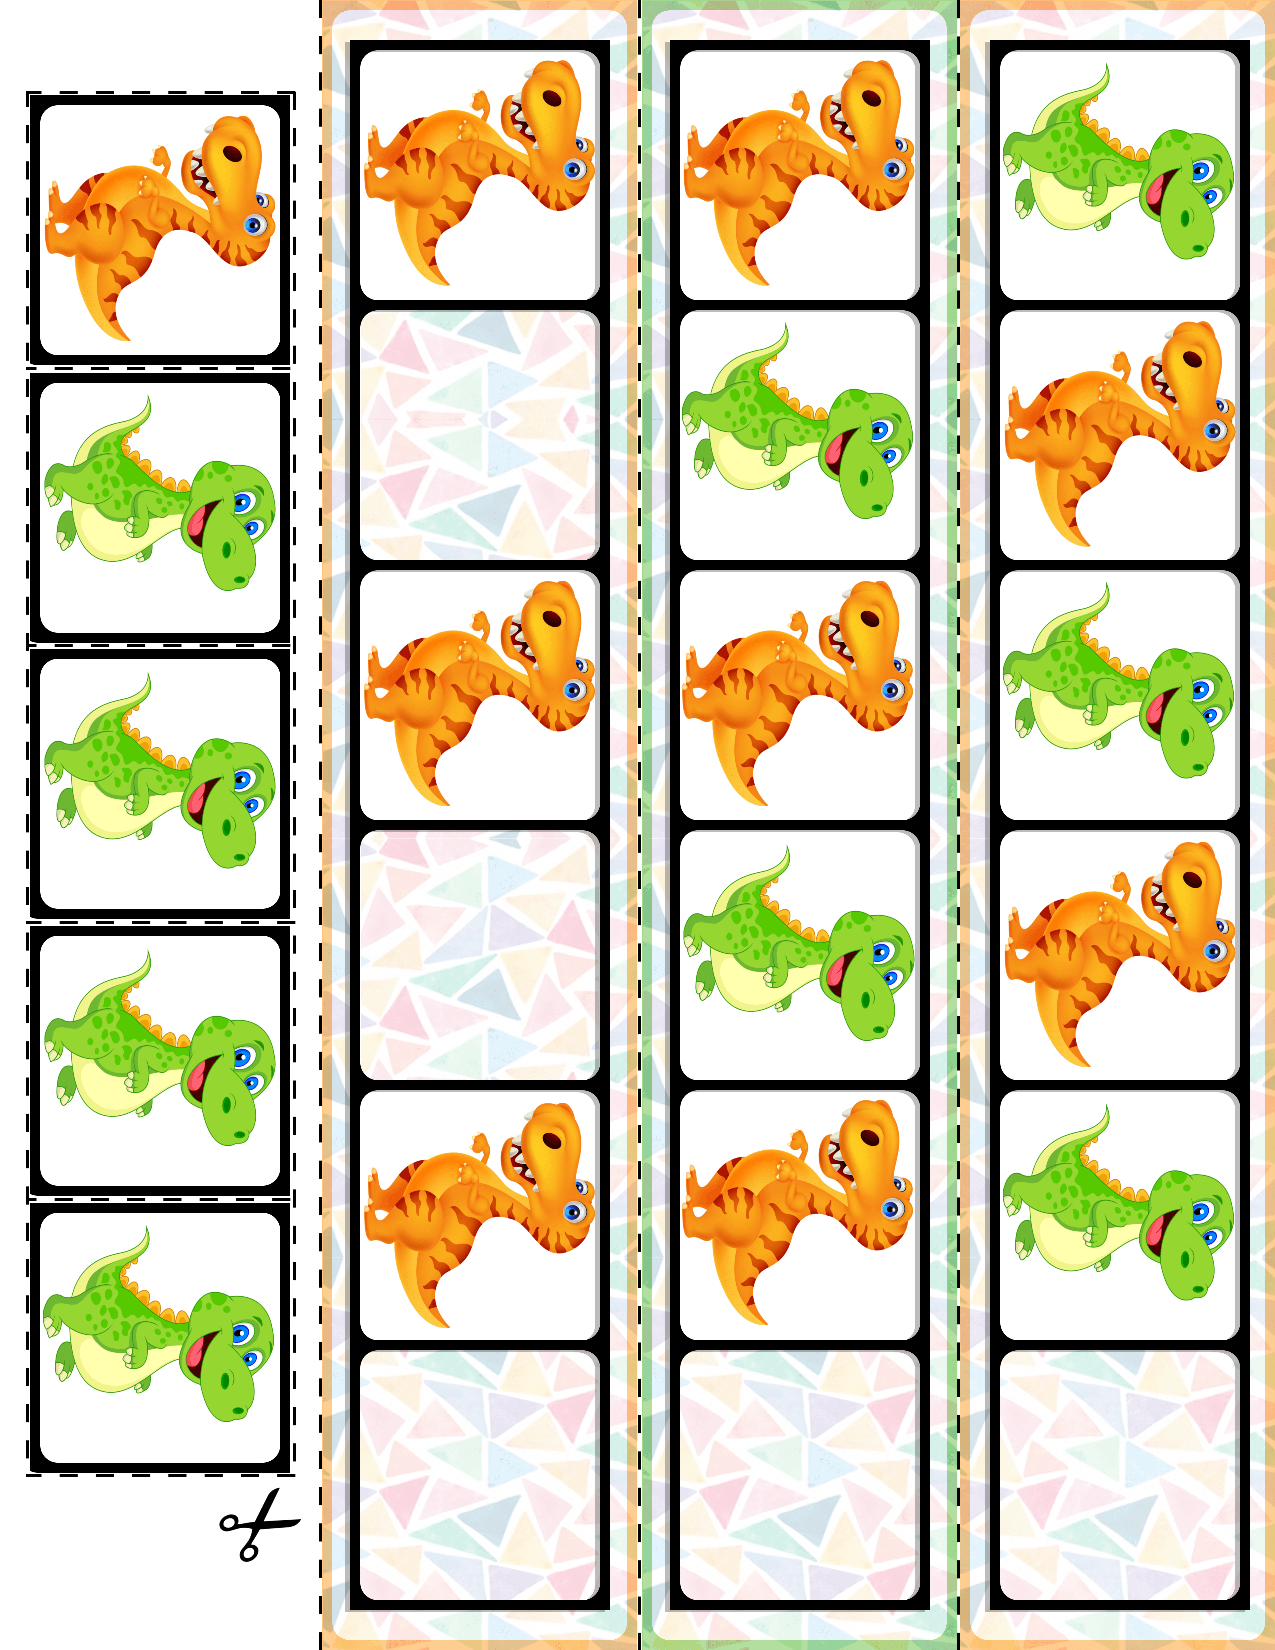 1 Teach Basic Ab Patterns With These Dinosaur Fill In The Pattern Cards 30 Cards And Super Quick Prep Mathce Preschool Patterns Ab Patterns Card Patterns [ 1650 x 1275 Pixel ]